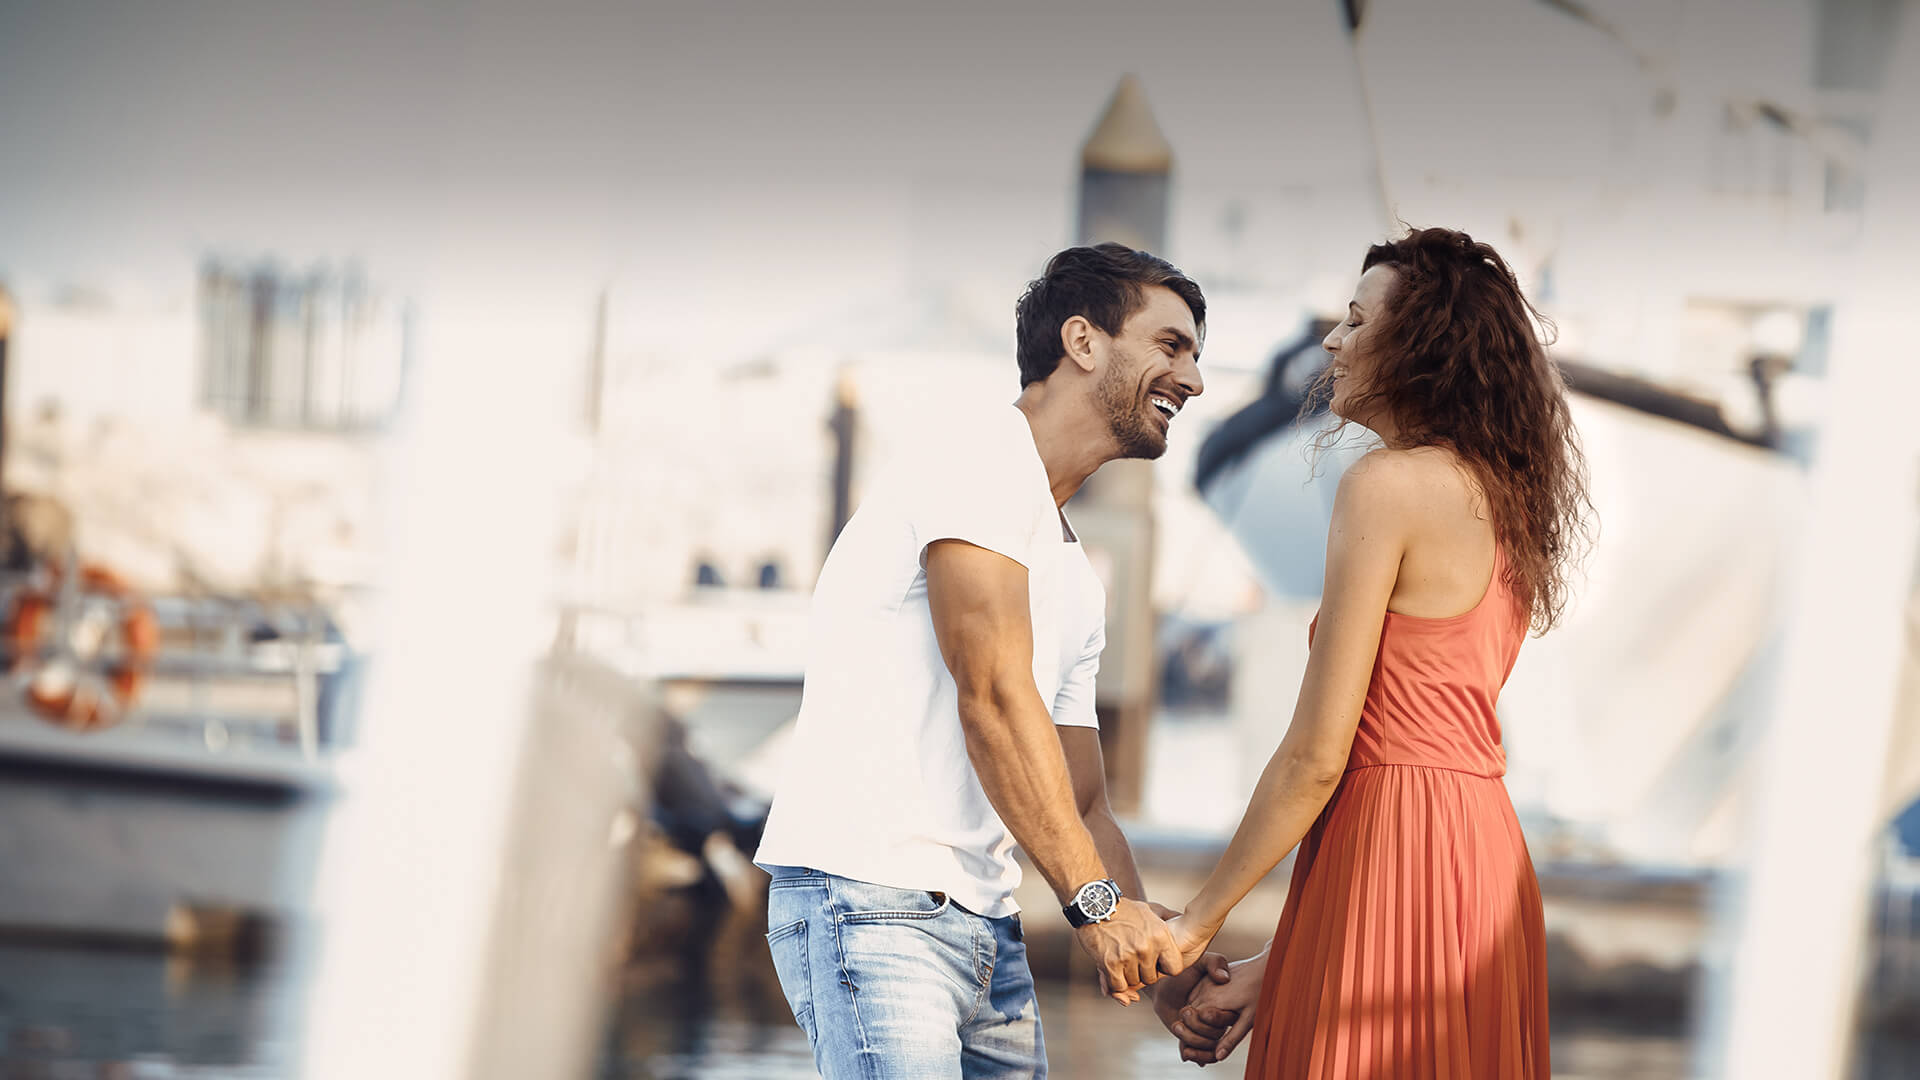 Arab dating symbolized by a man and woman holding hands and standing happily at the port in UK